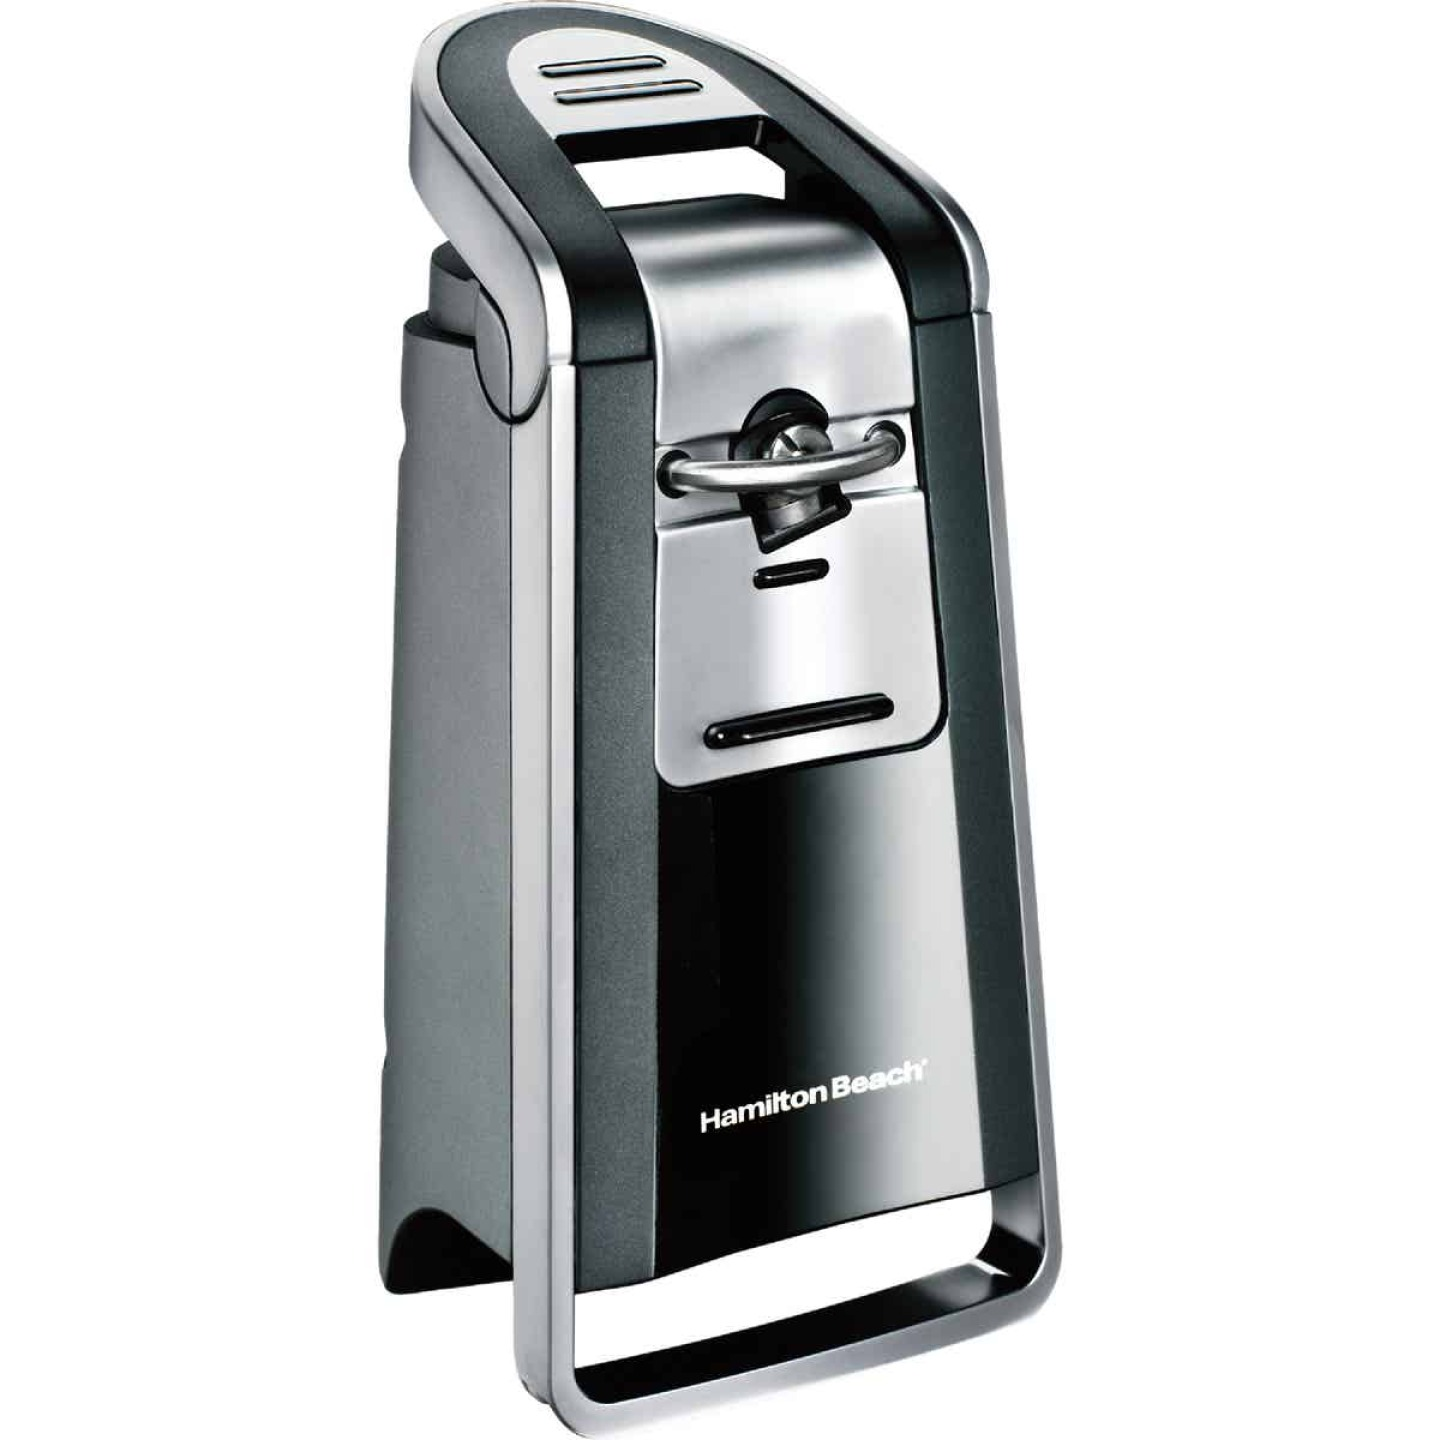 Hamilton Beach Smooth Touch Chrome Electric Can Opener Image 1